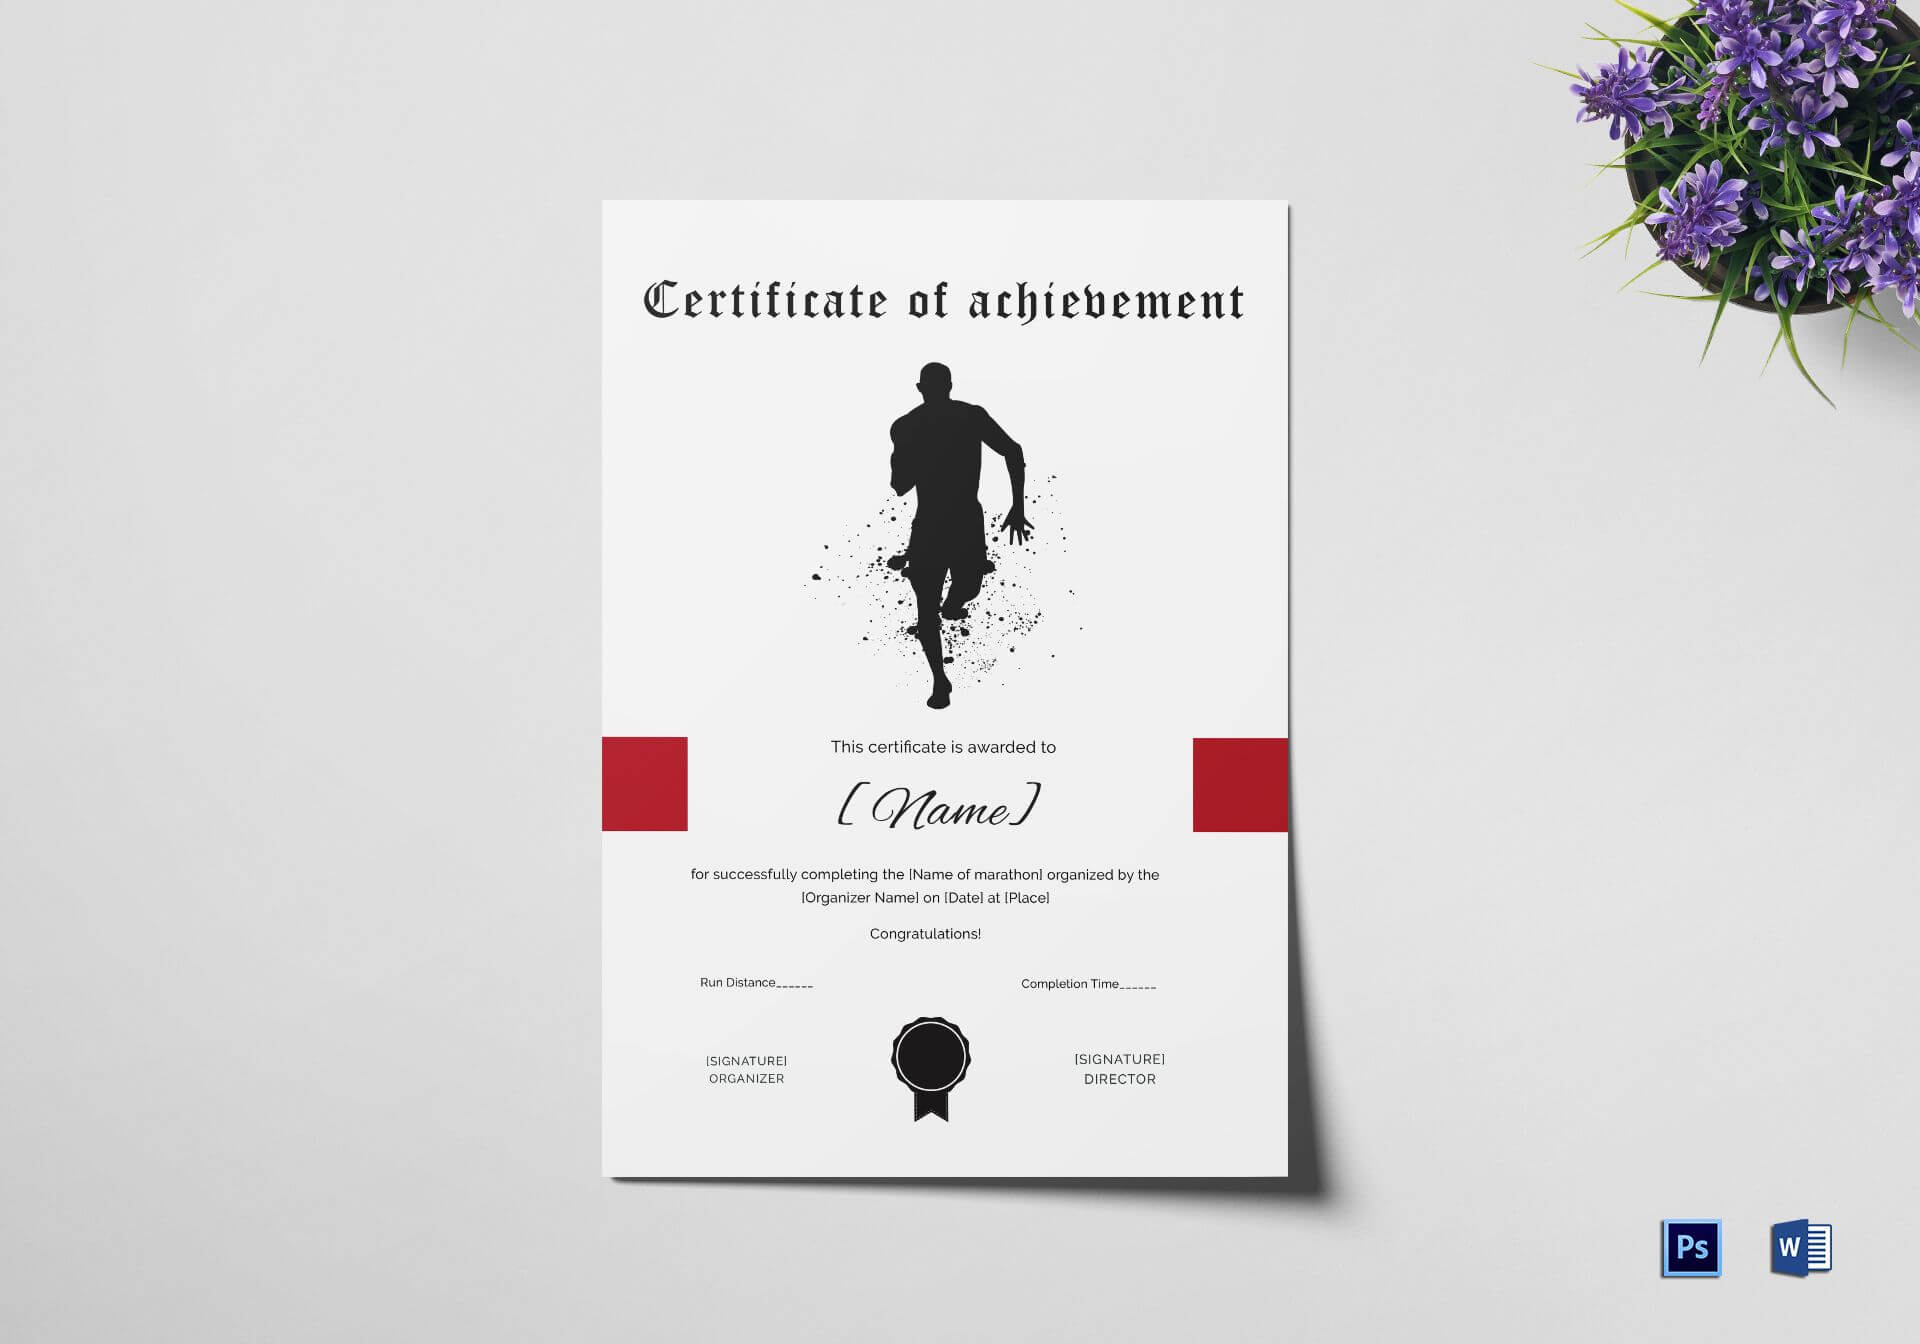 Certificate Of Achievement For Running Template For Walking Certificate Templates